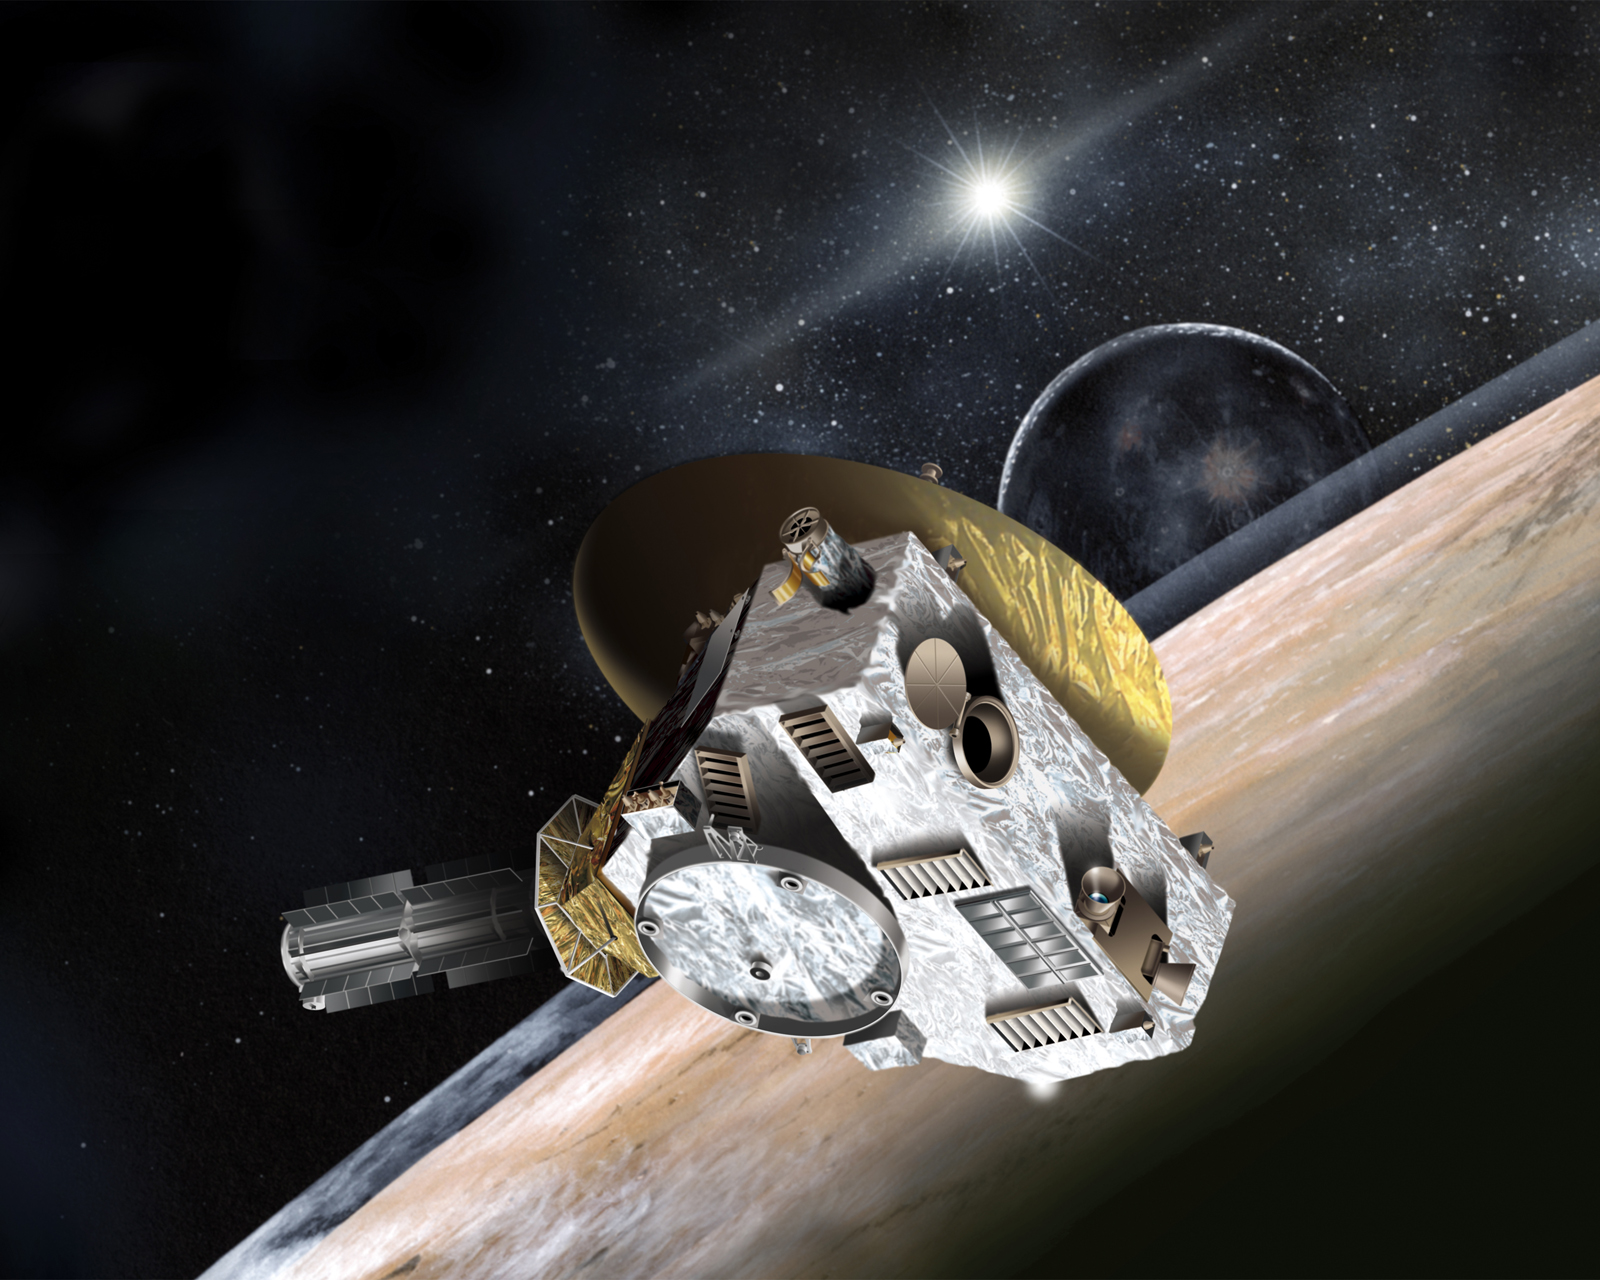 New Horizons: Exploring Pluto and Beyond